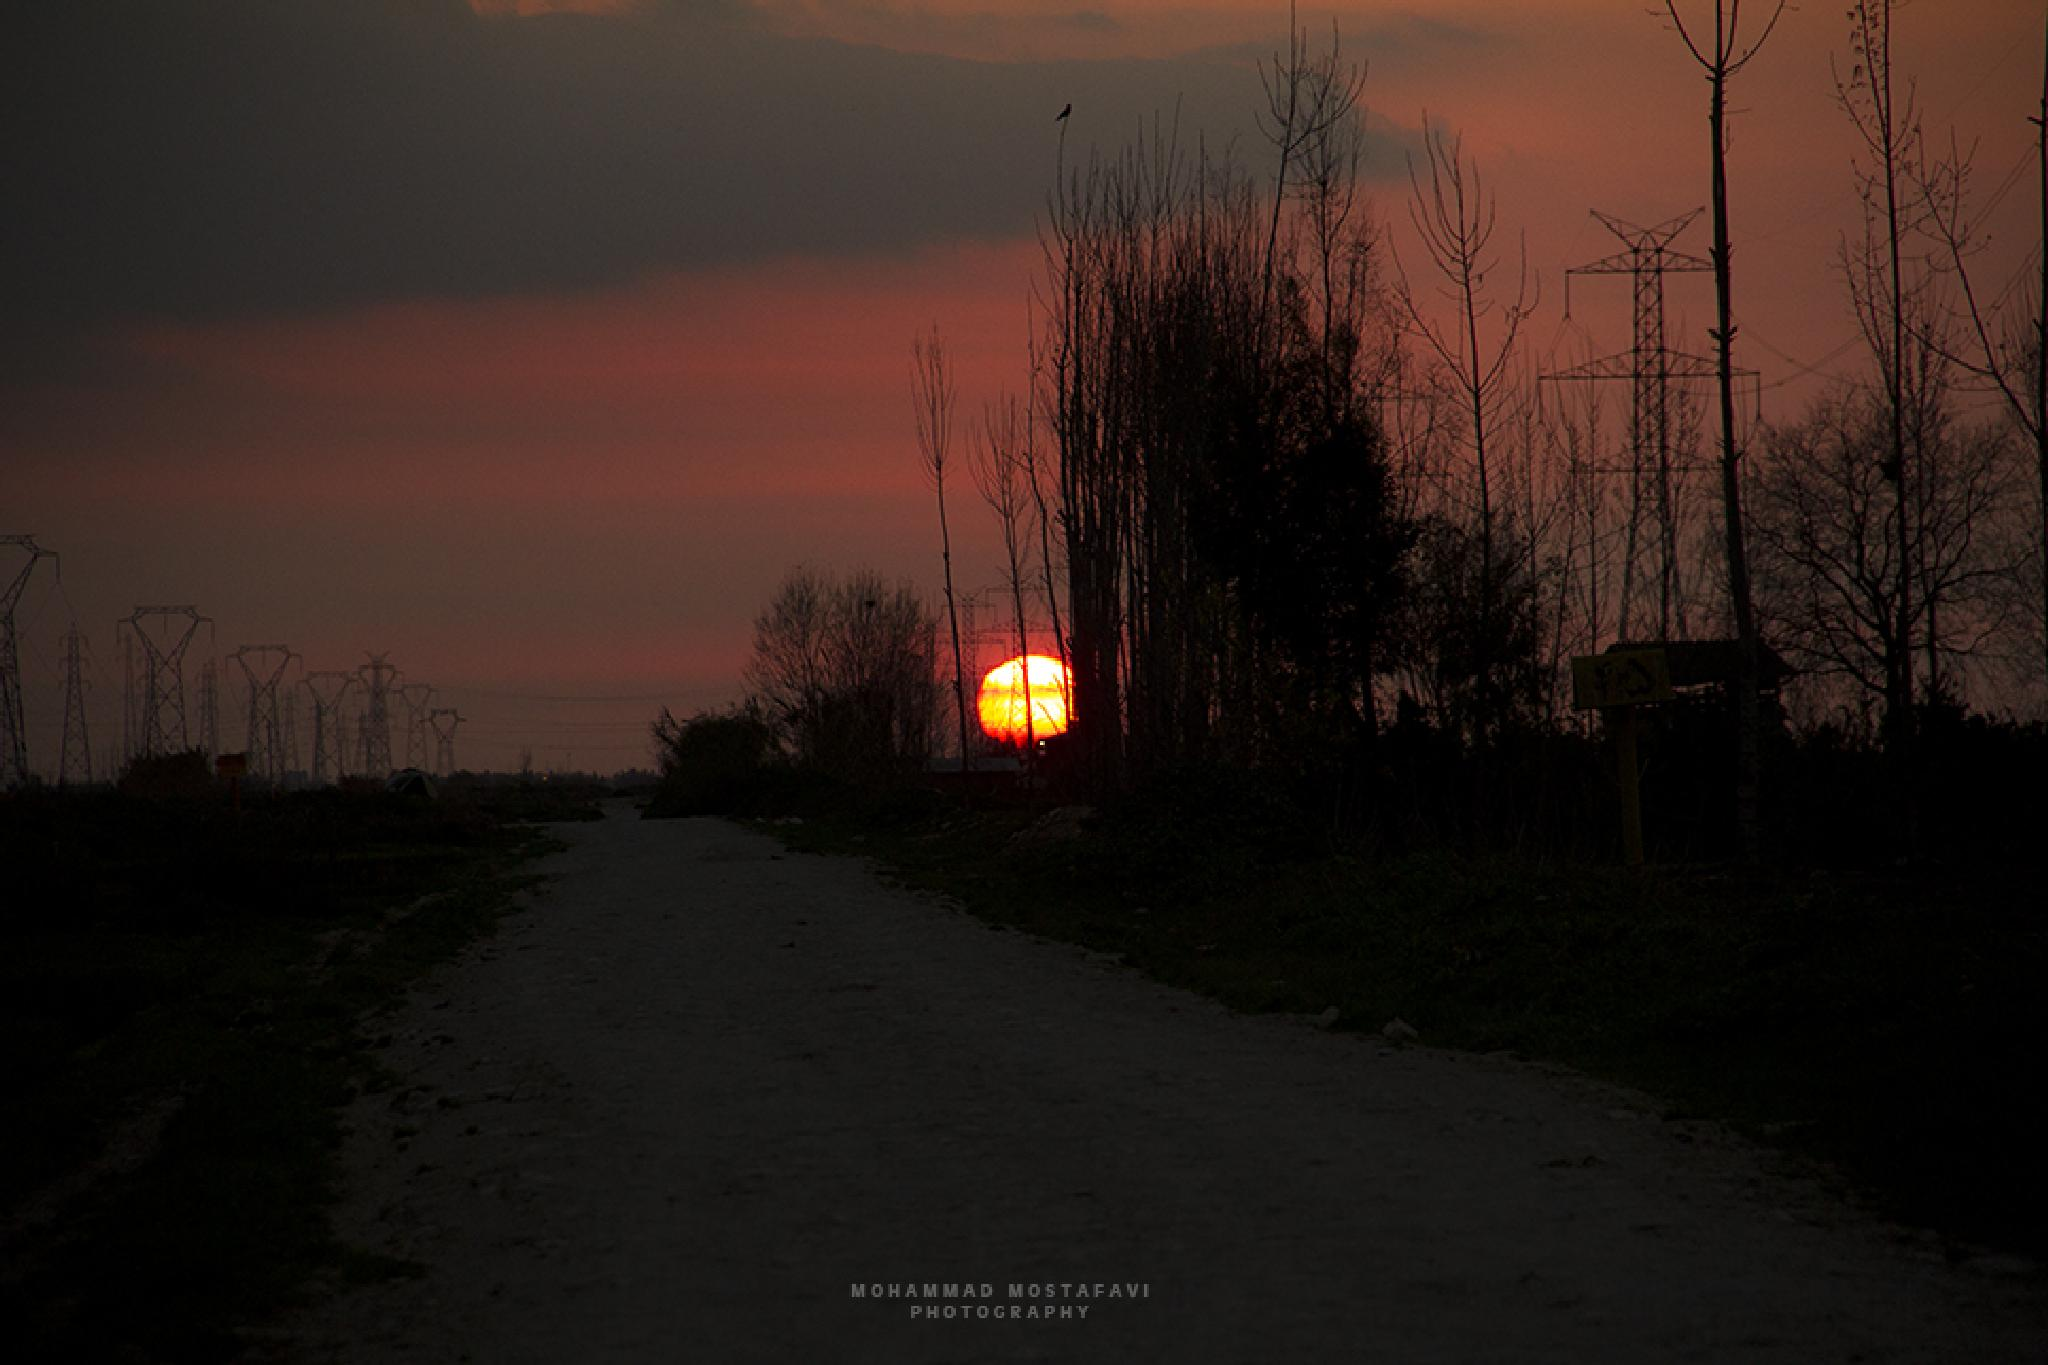 Road to Love by Mohammad Mostafavi